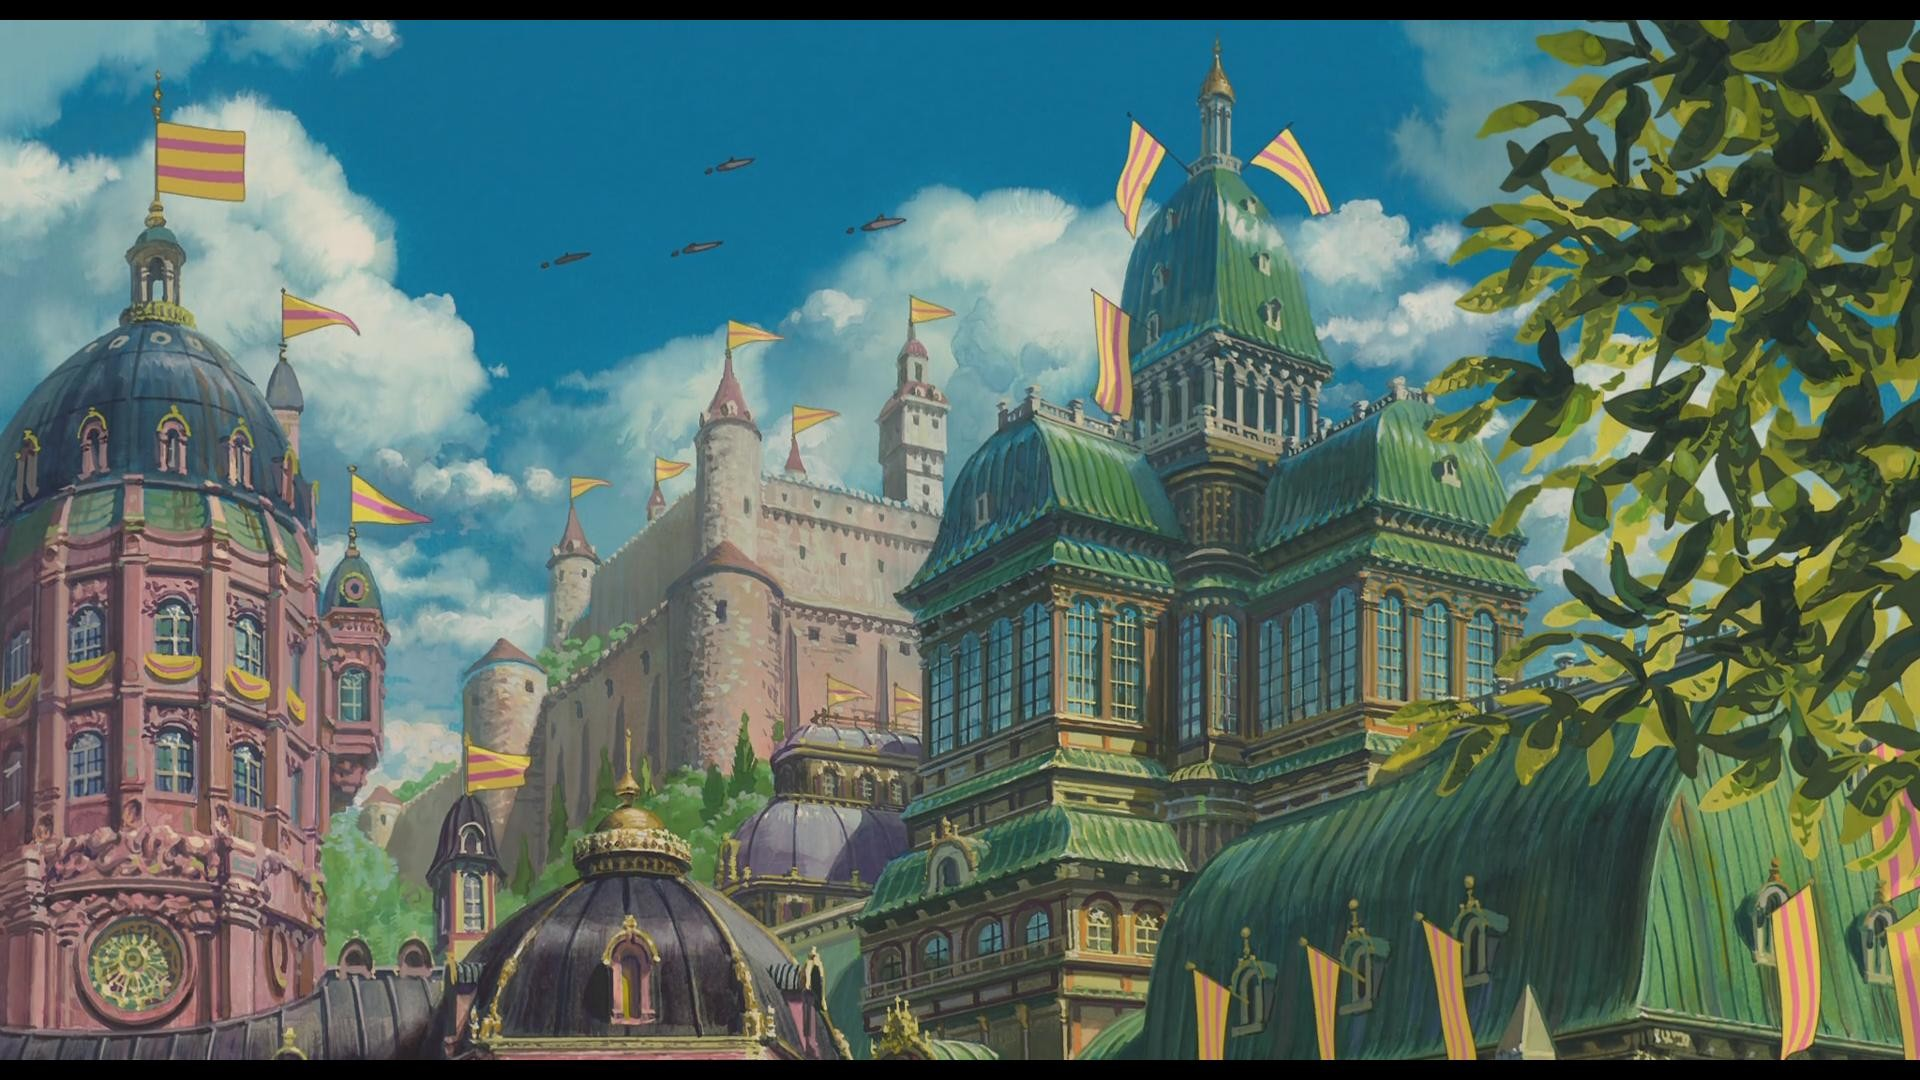 I was so impressed by the animation in Howl's Moving Castle that I've been  screenshotting a few of the more memorable scenes to use as wallpapers.